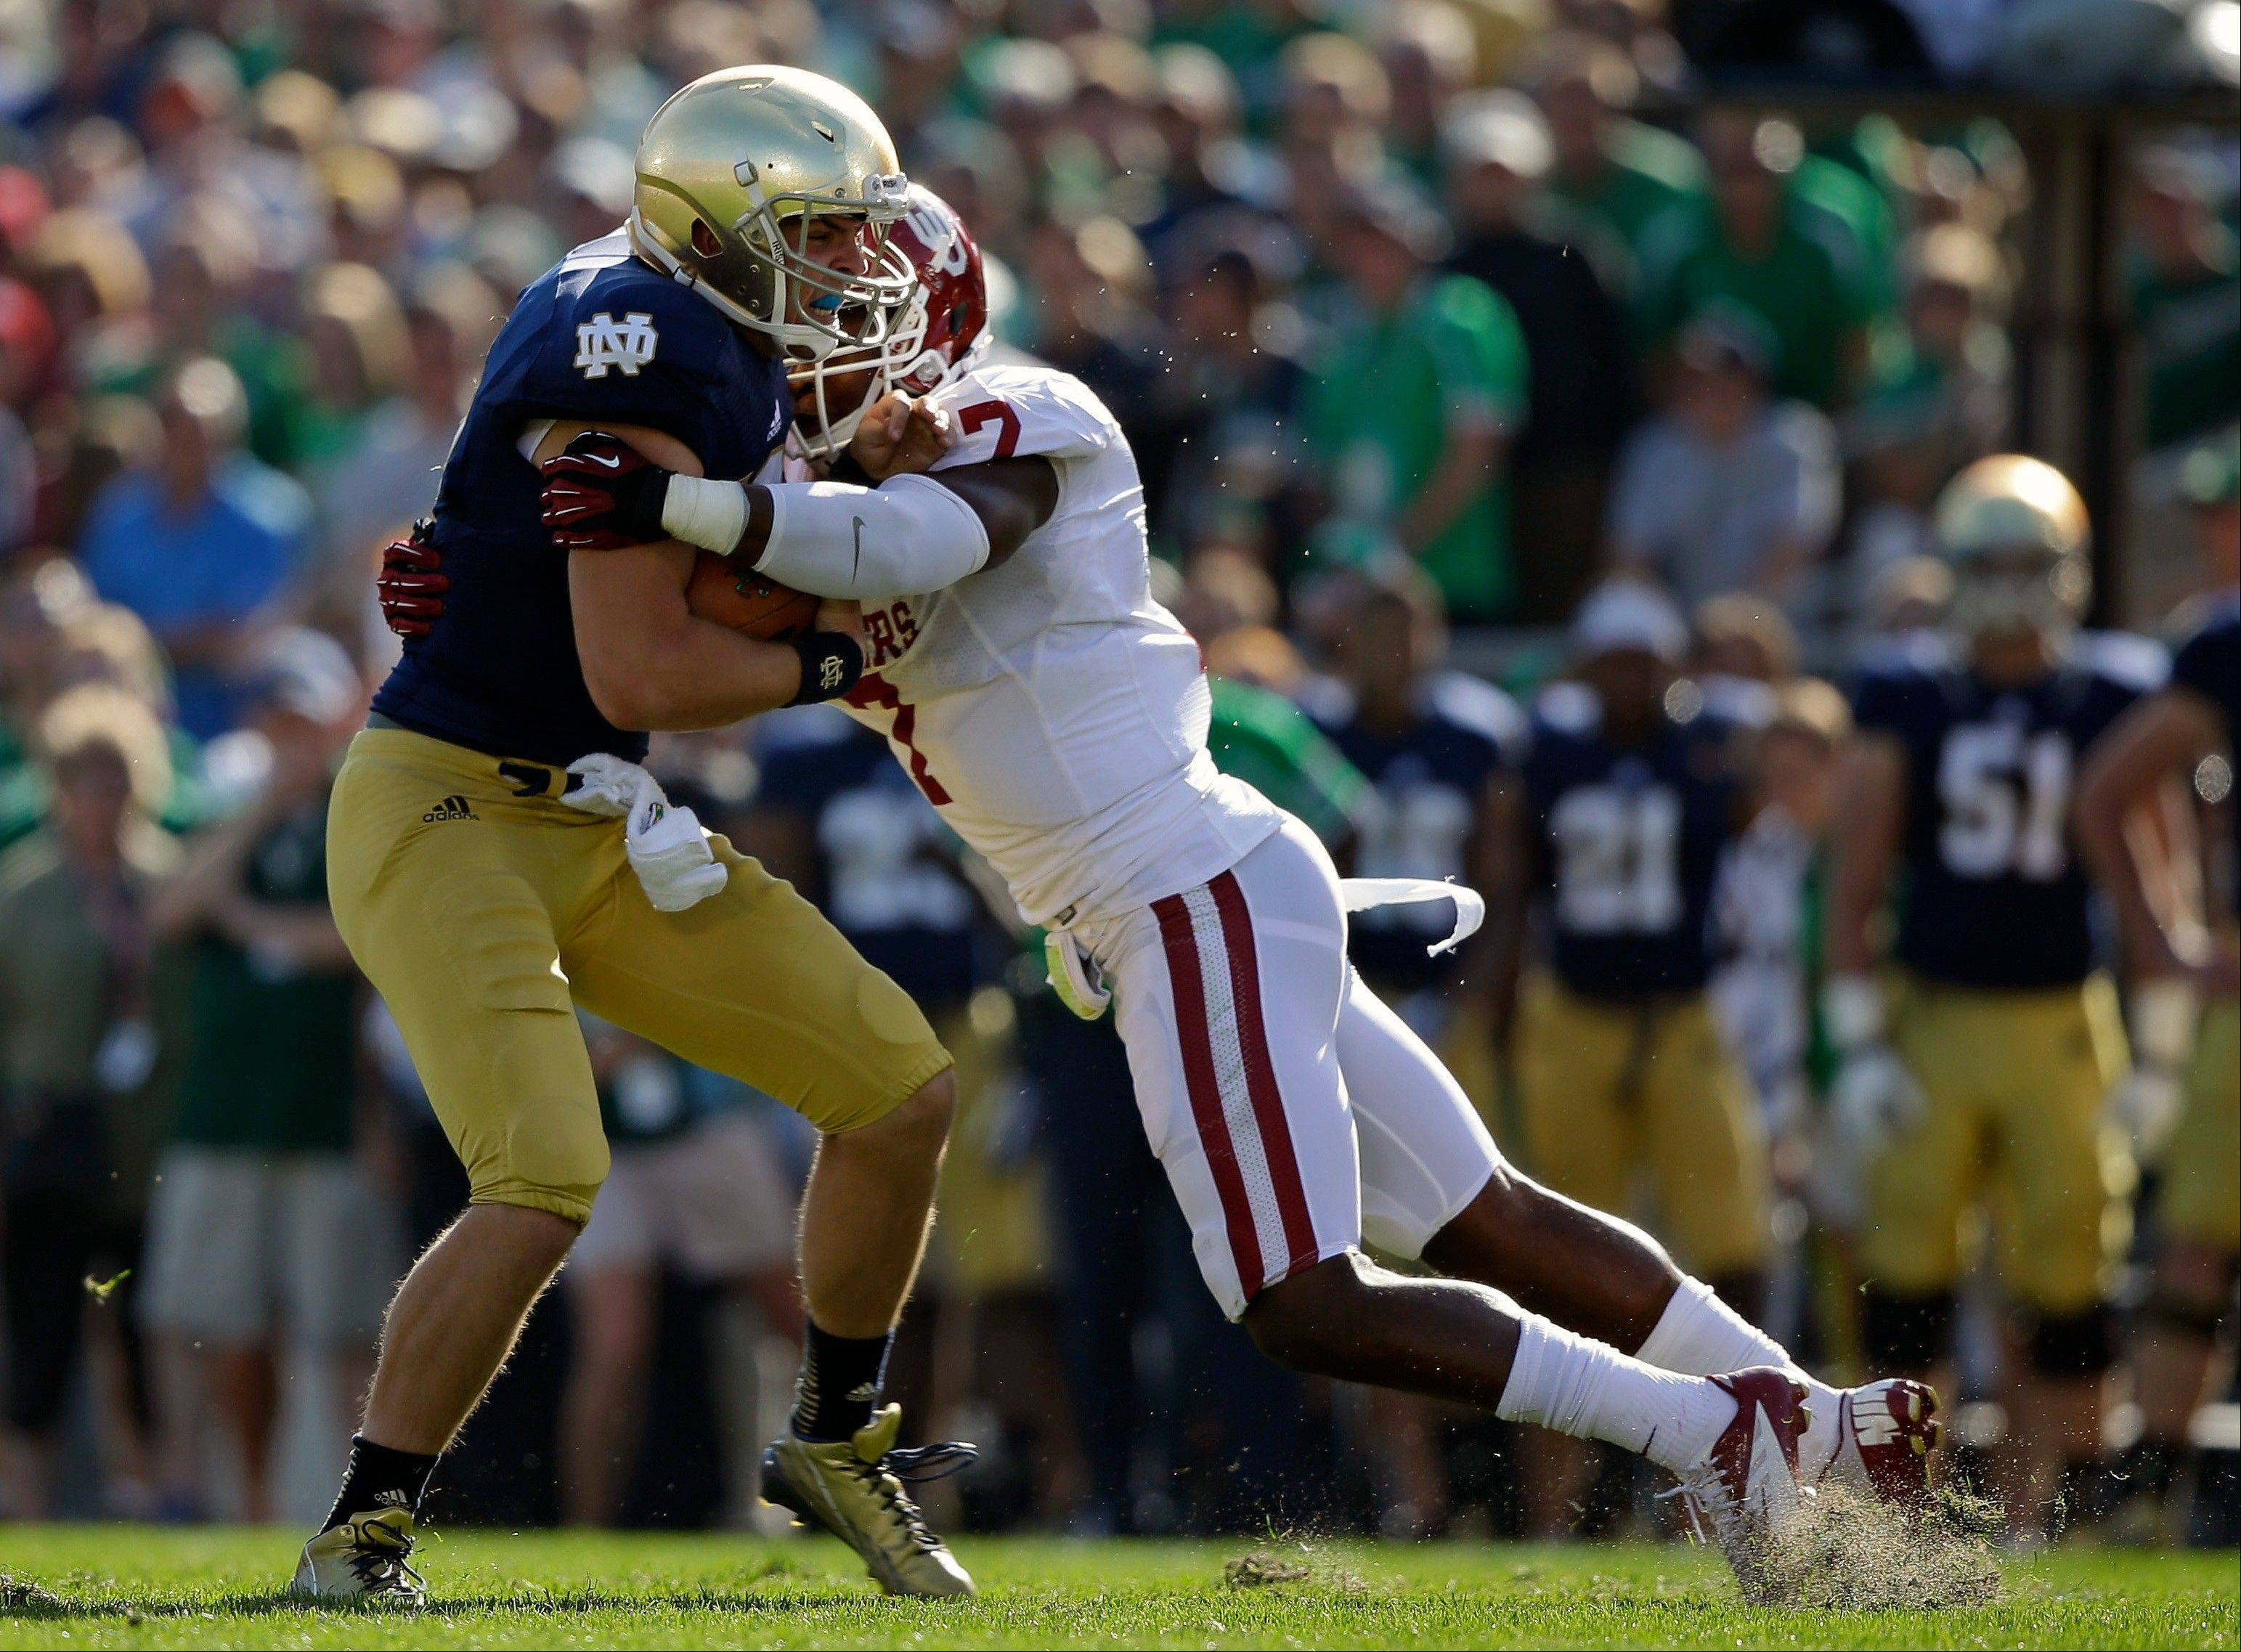 Notre Dame's Andrew Hendrix, left, is tackled by Oklahoma's Corey Nelson (7) during the matchup in South Bend, Ind. Saturday.